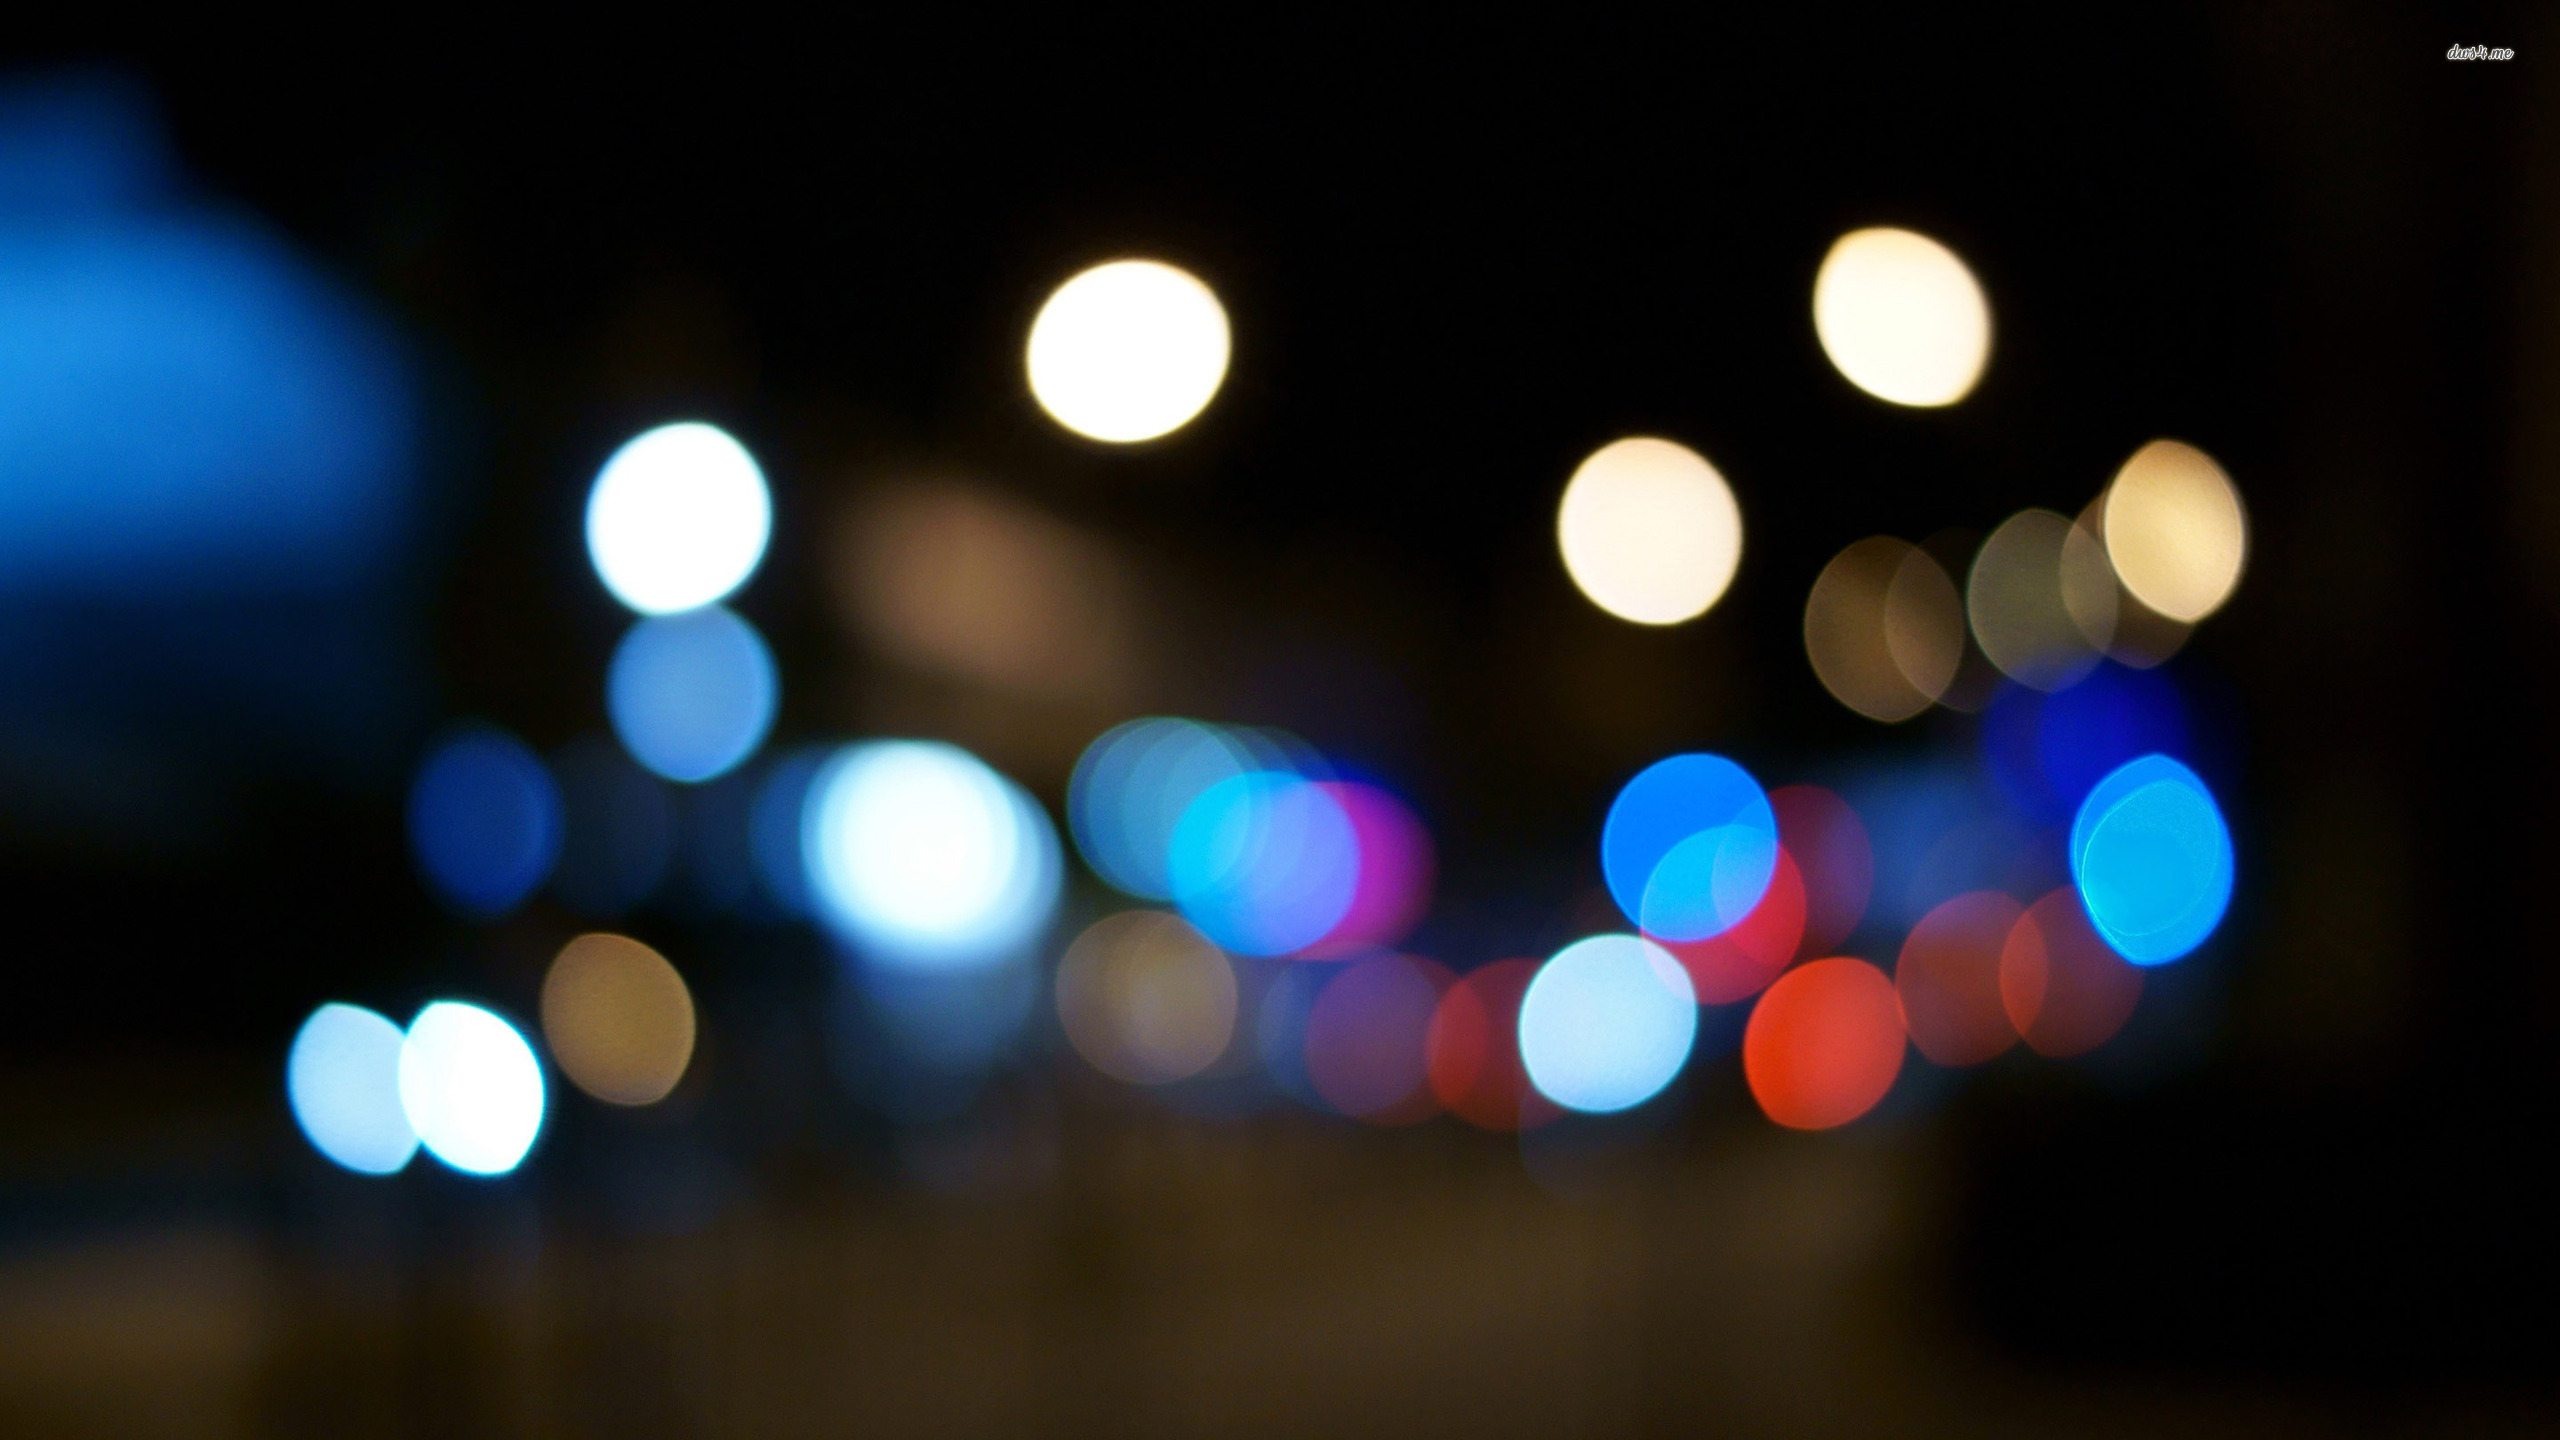 ... Night lights wallpaper 2560x1440 ...